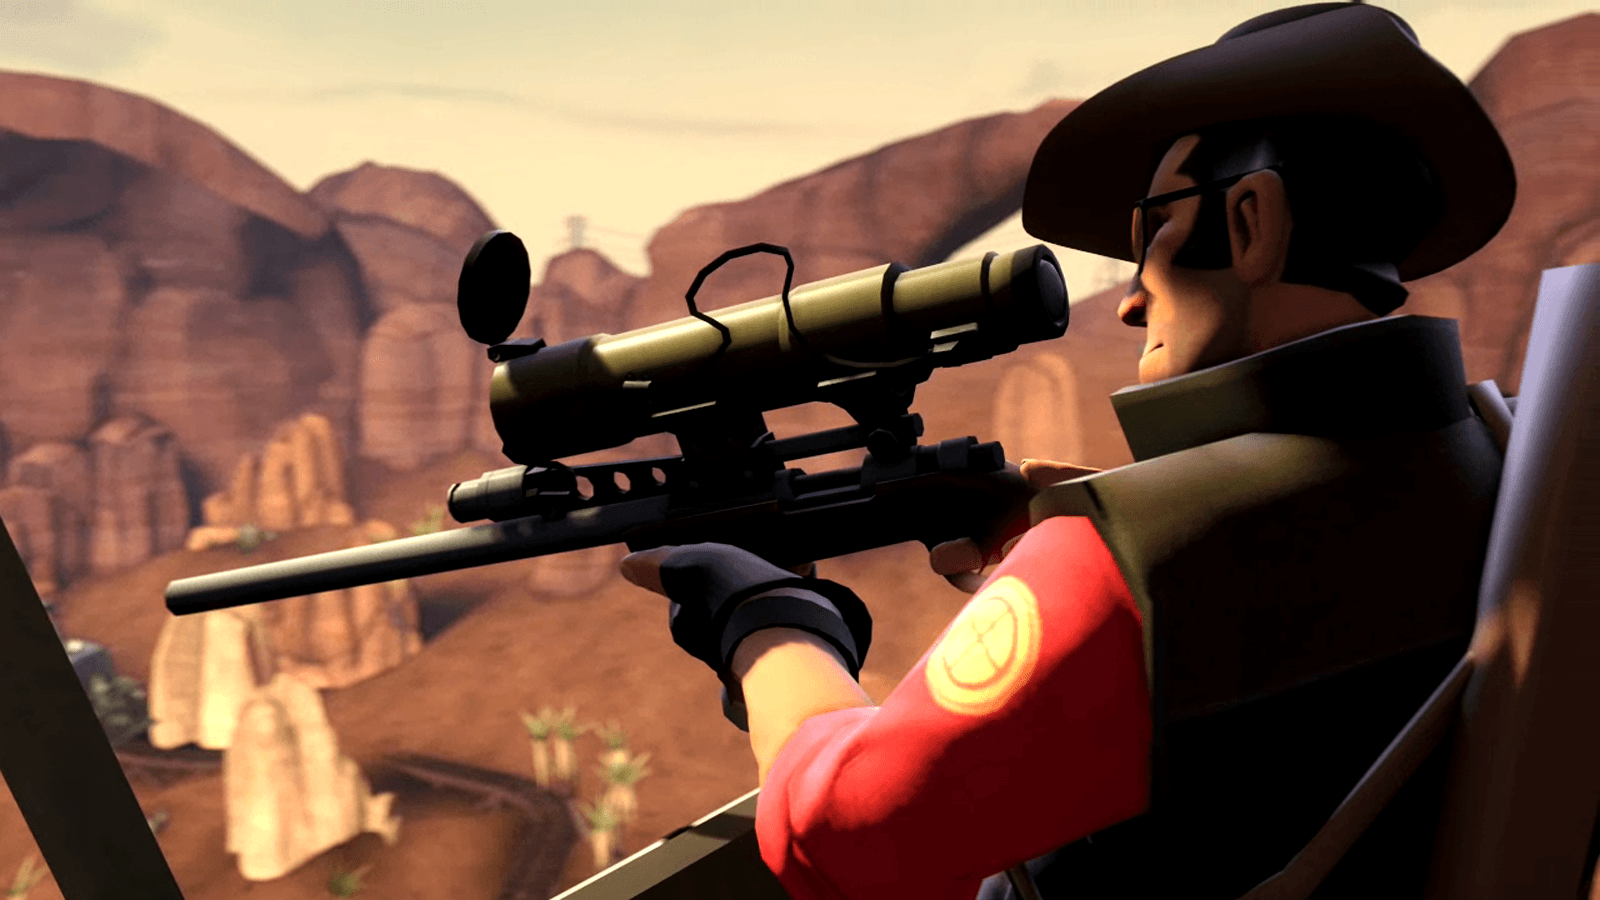 1080p team fortress 2 backgrounds